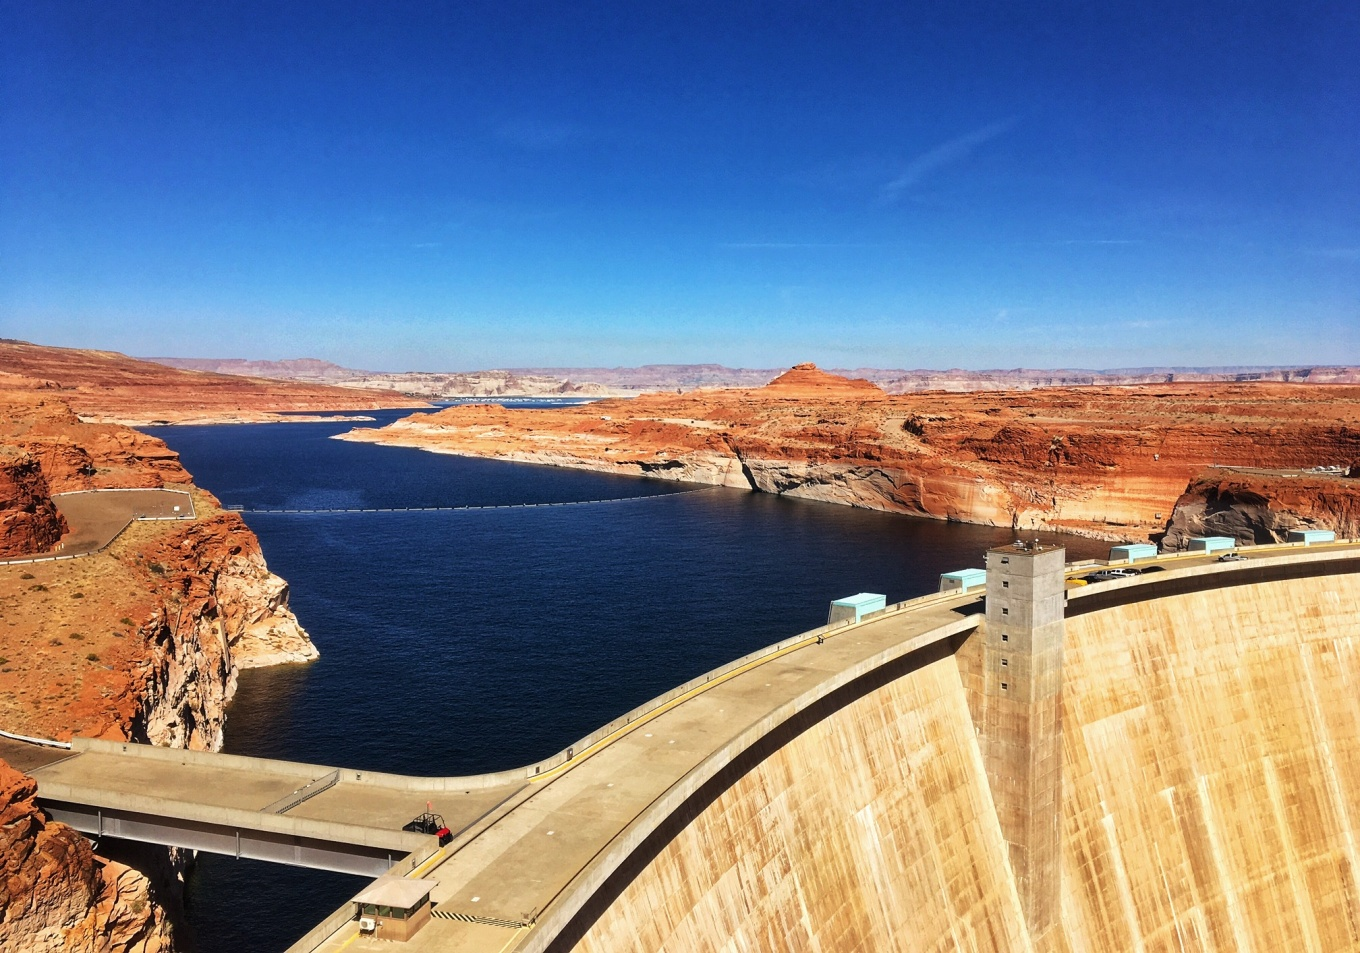 Glen Canyon Dam holding back Lake Powell